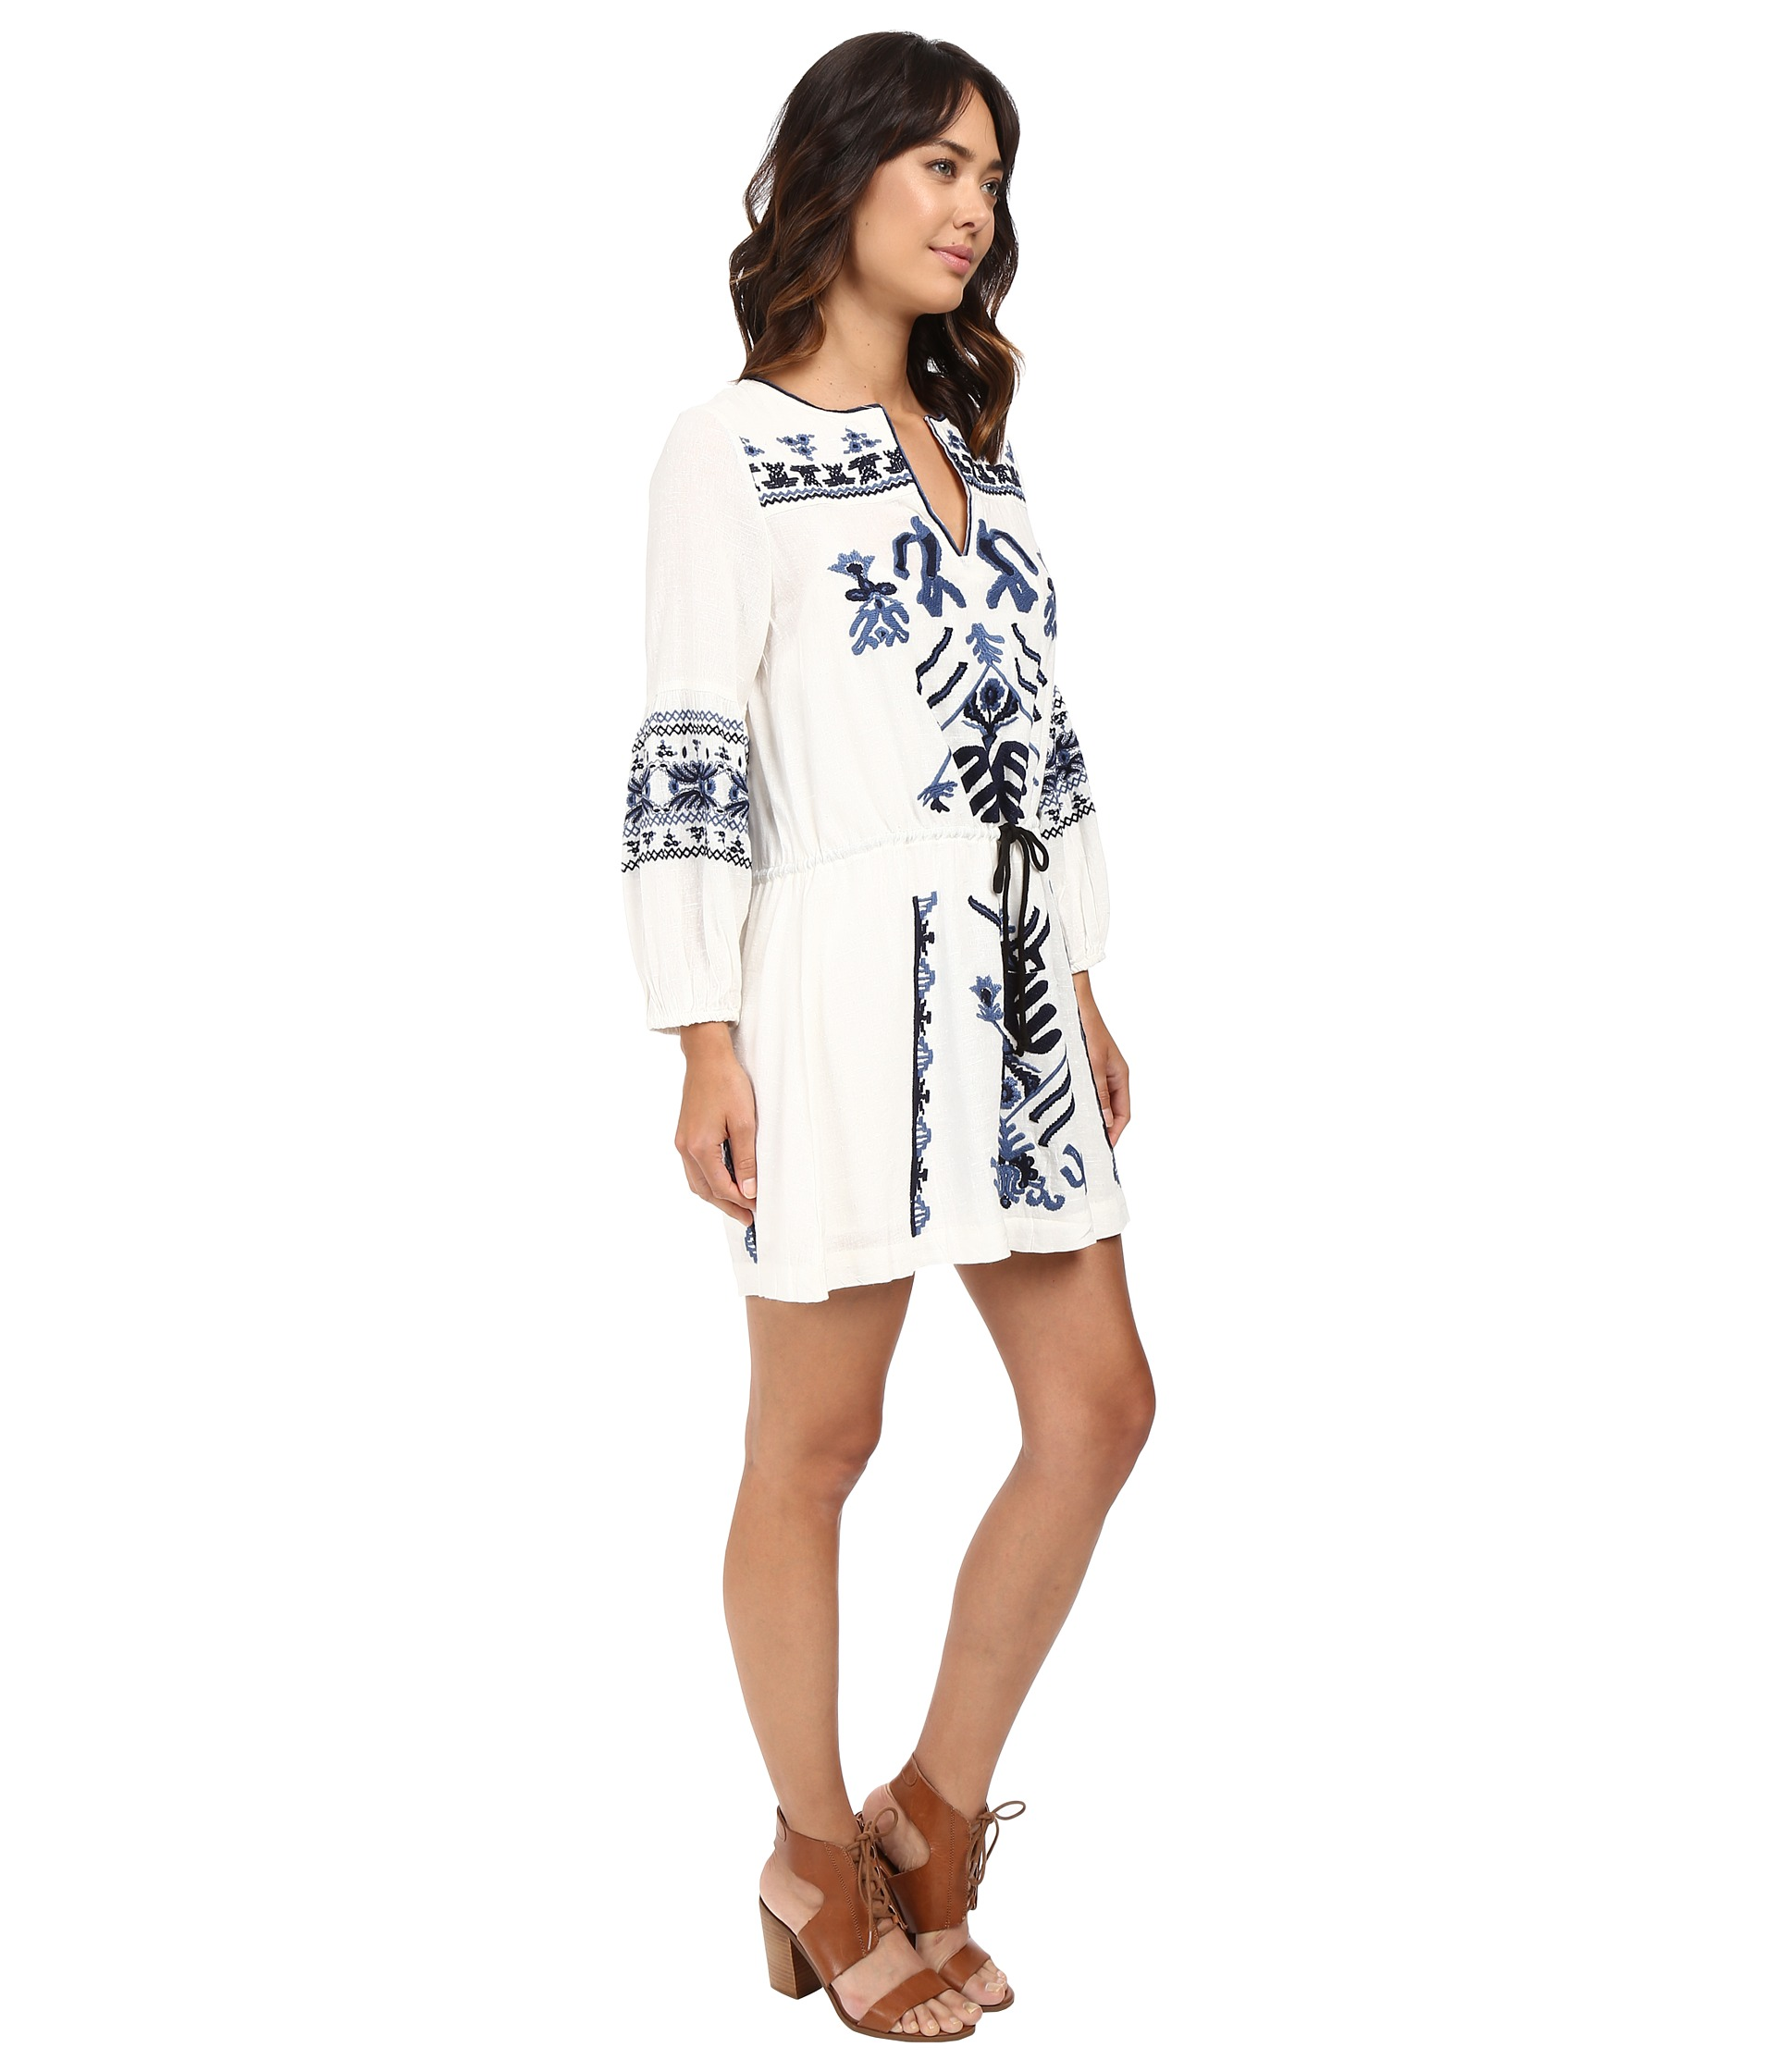 bce5bb70b73e Free People Anouk Embroidered Mini Dress Ivory Combo on PopScreen